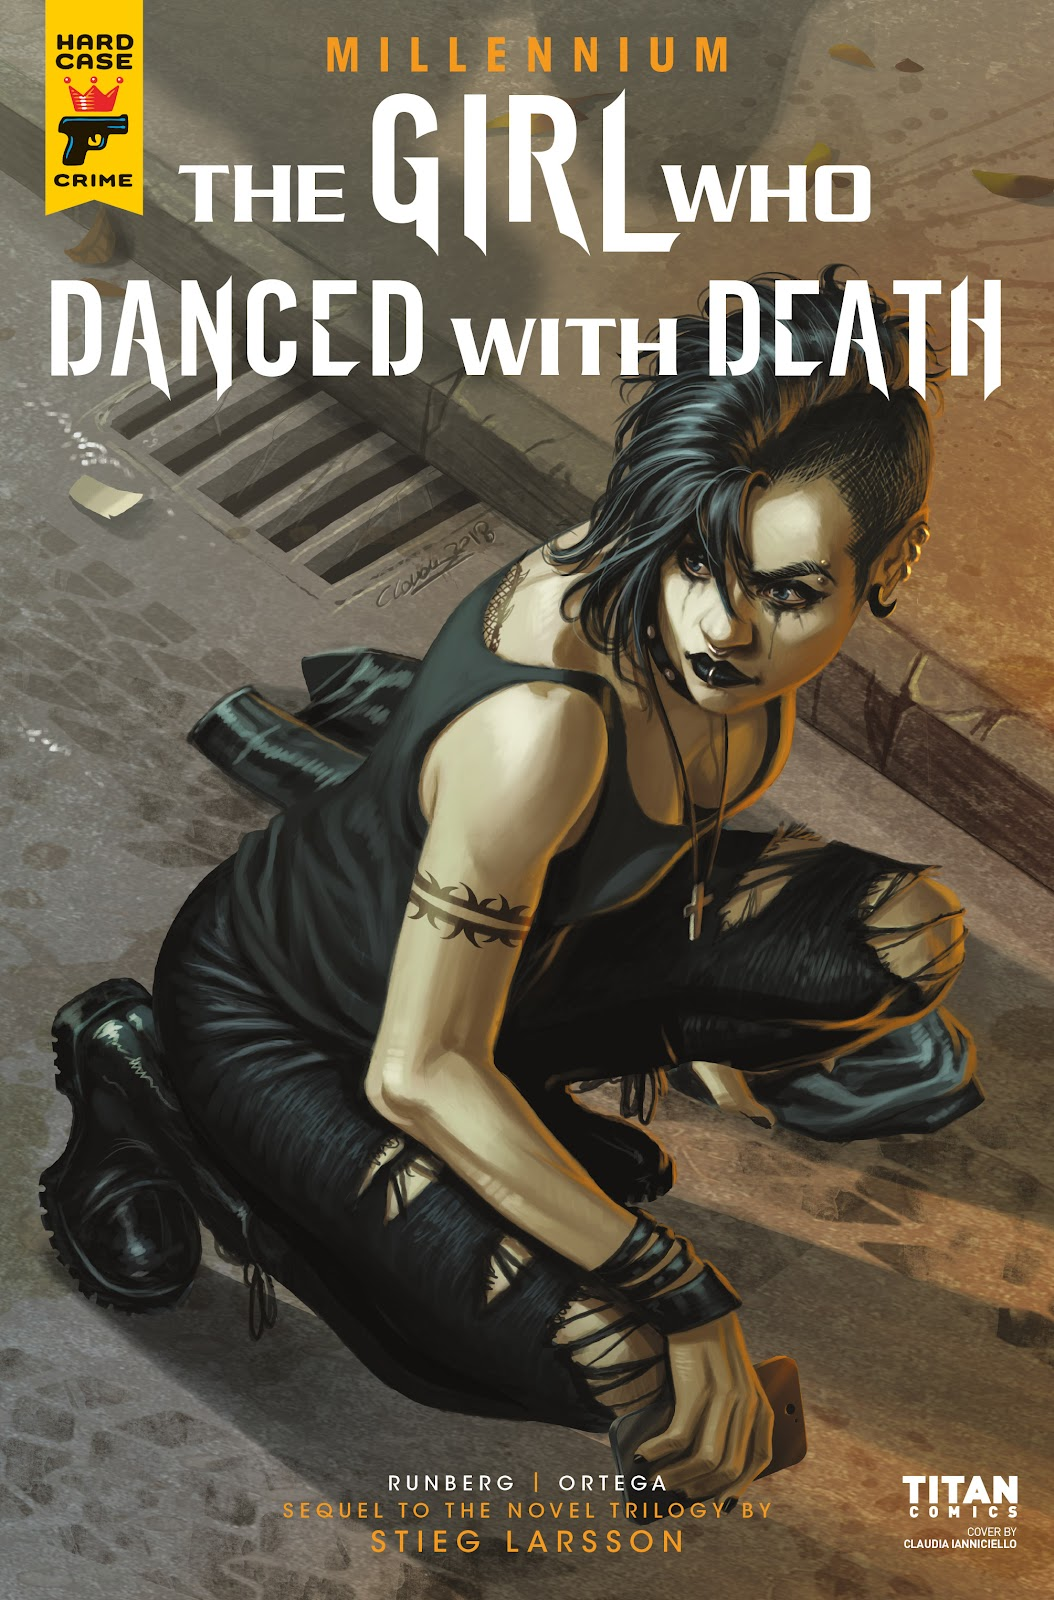 Read online Millennium: The Girl Who Danced With Death comic -  Issue #2 - 1